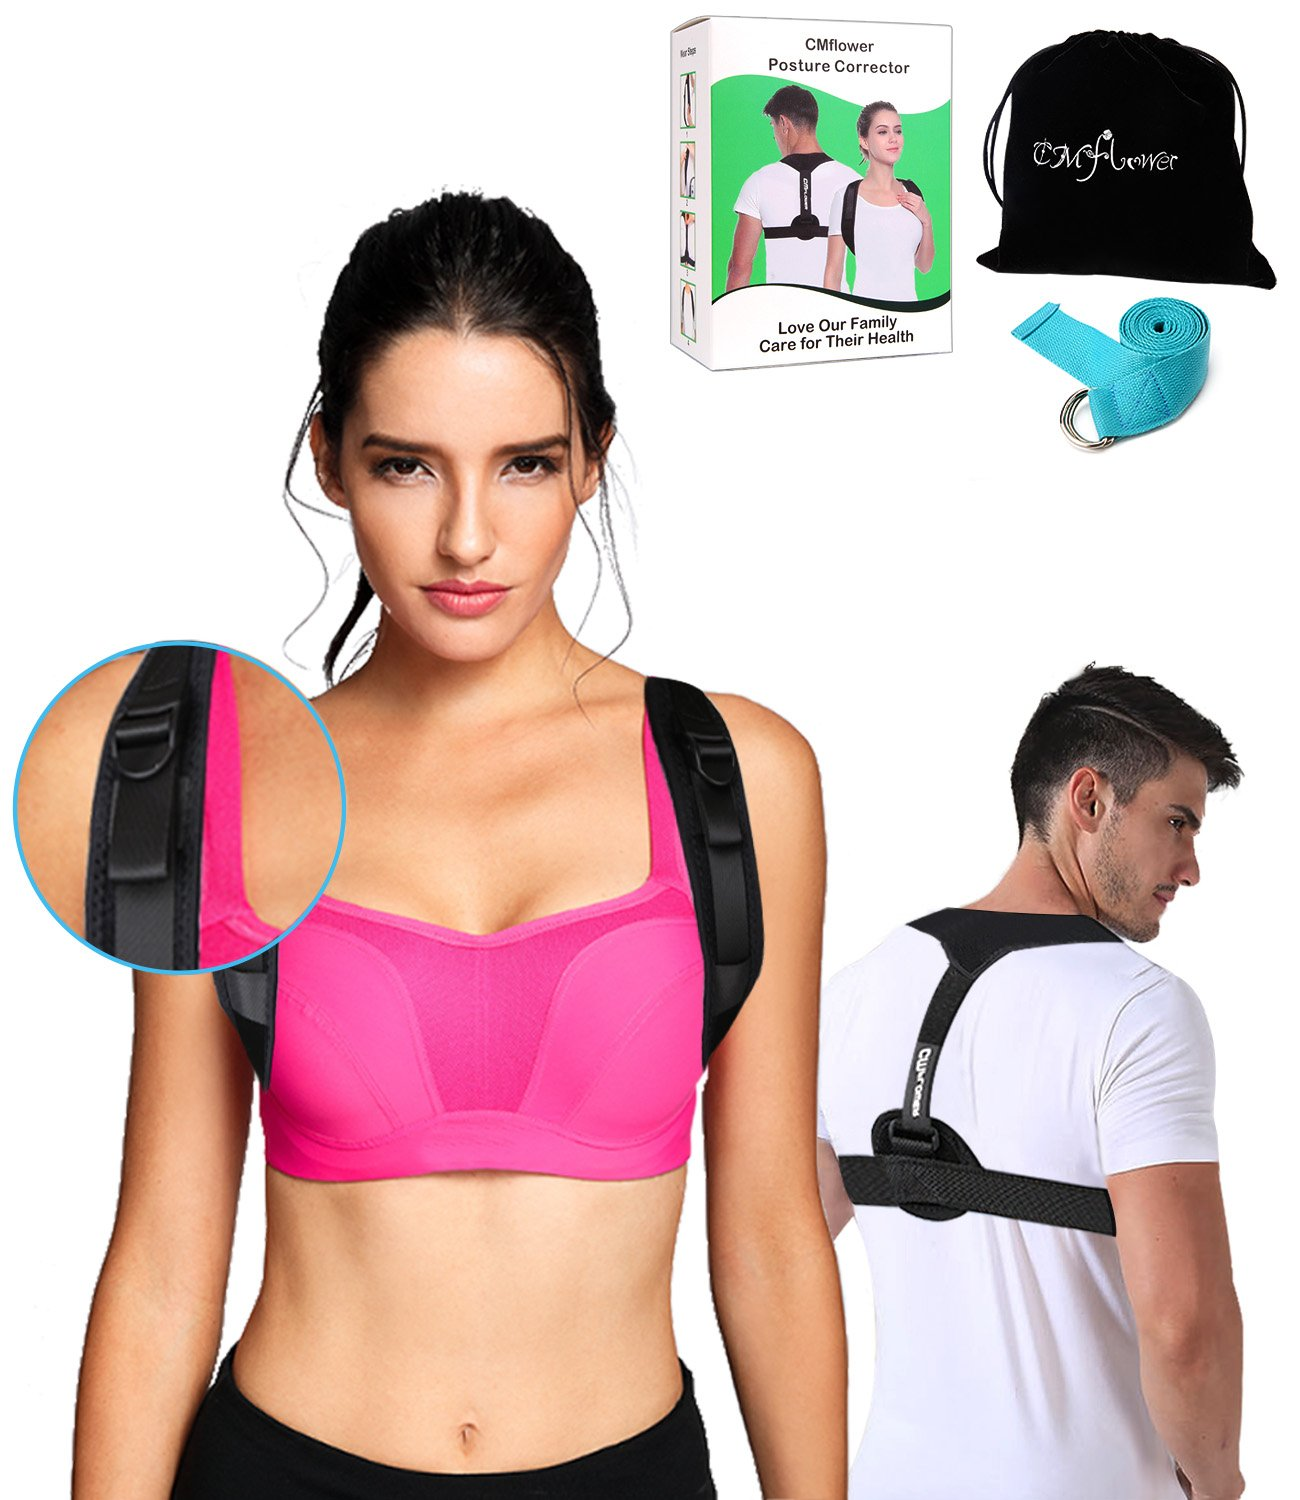 CMflower Posture Corrector 2018 New Easy Adjust Buckle Design Unnoticeable Back Brace with Yoga Strap and Carry Bag Breathable Soft Material for Men Women Kids to Correct Hunching Slouch Bad Posture by CMflower (Image #1)